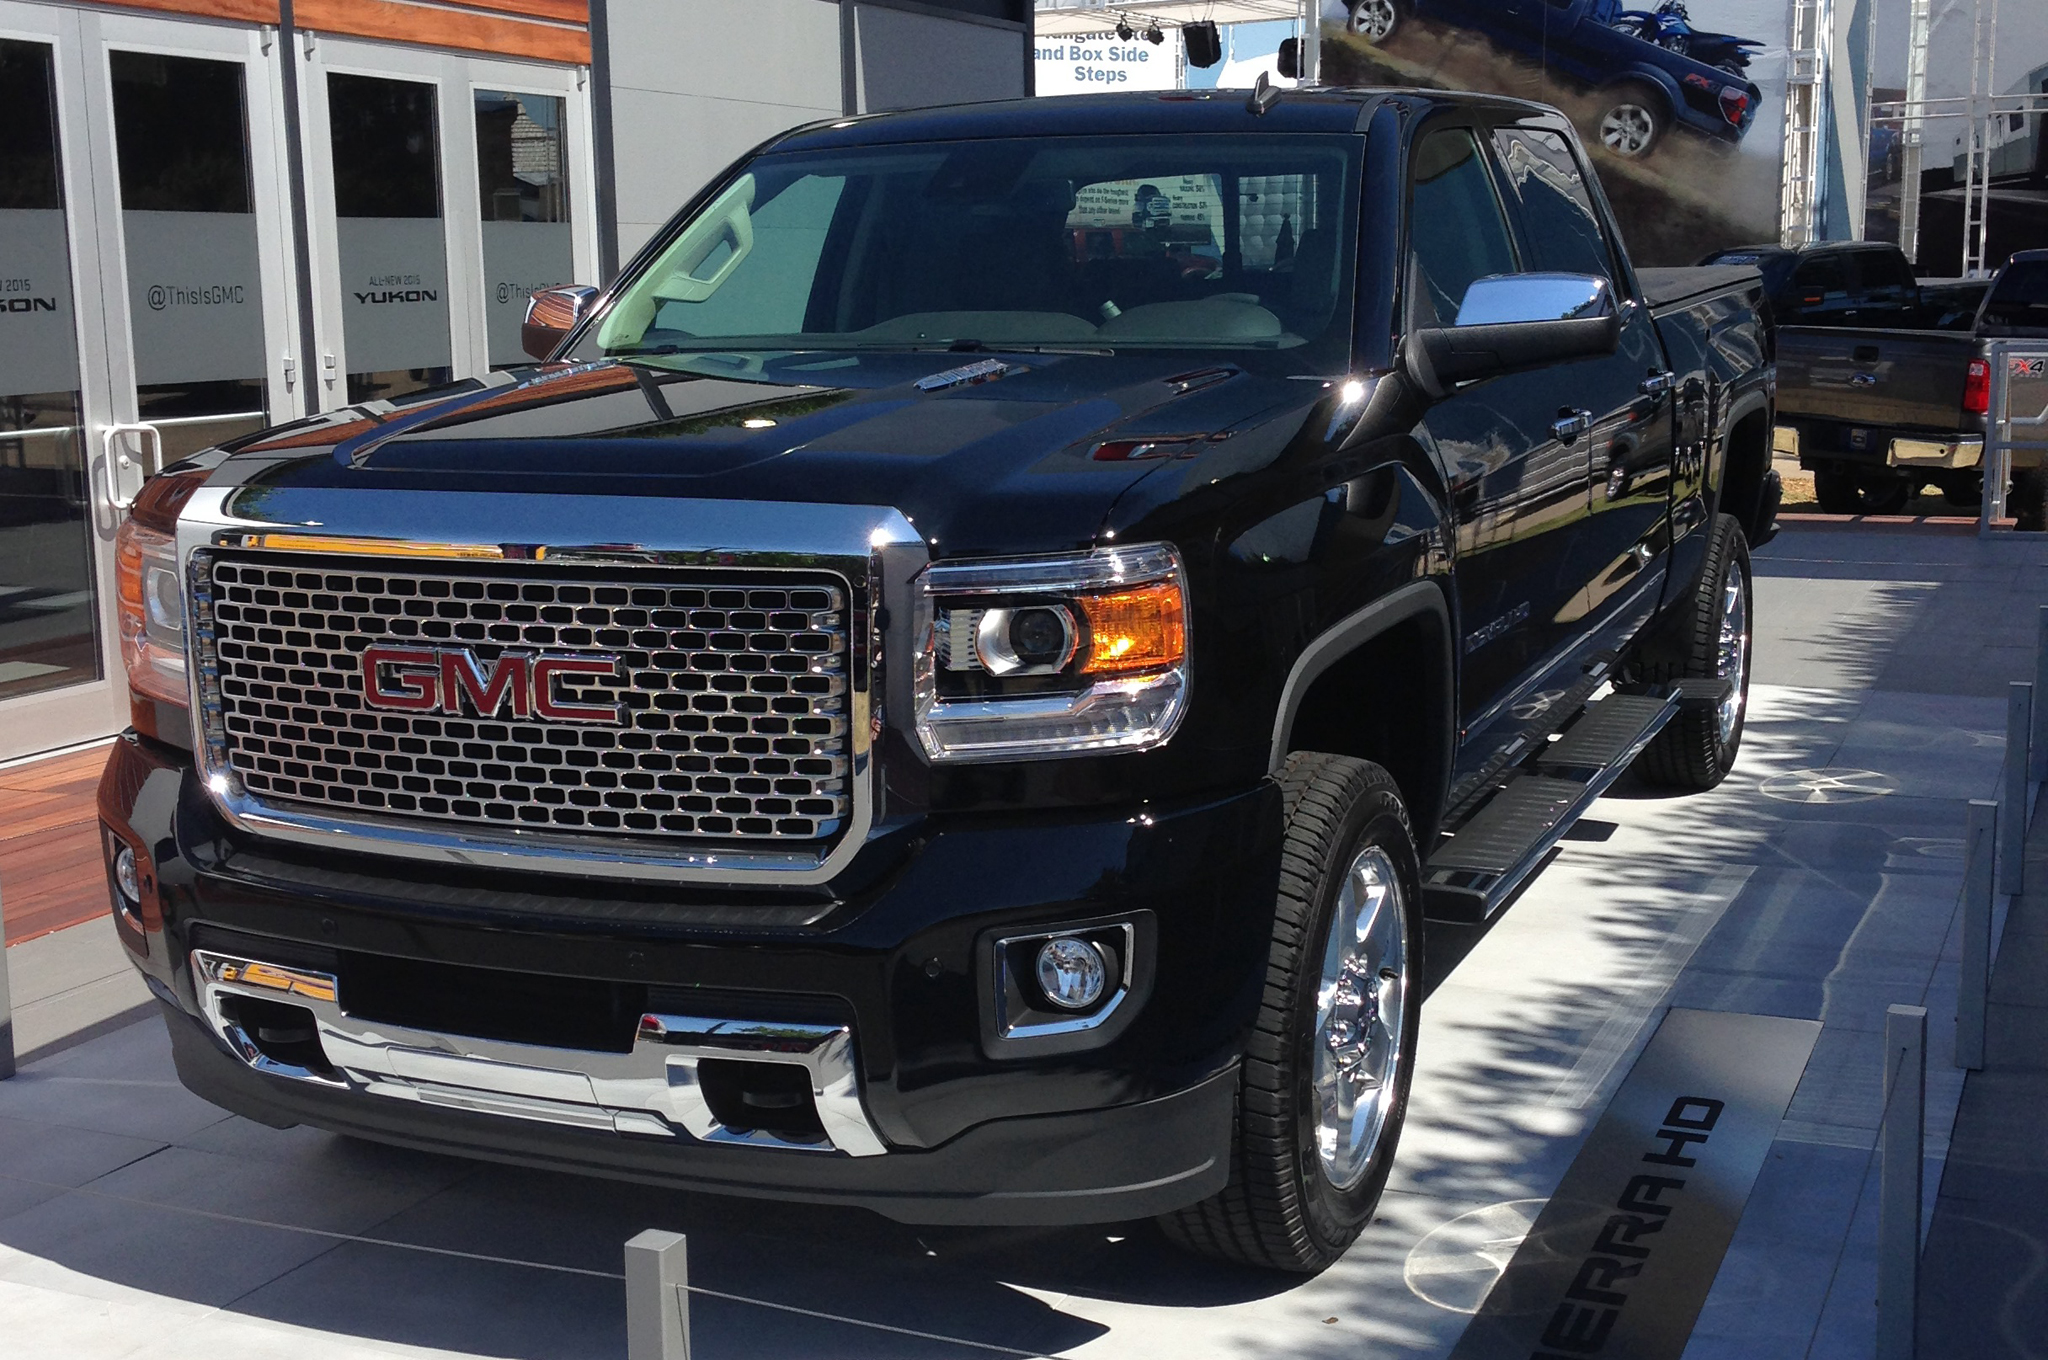 2015 gmc sierra 2500hd 11 gmc sierra 2500hd 11